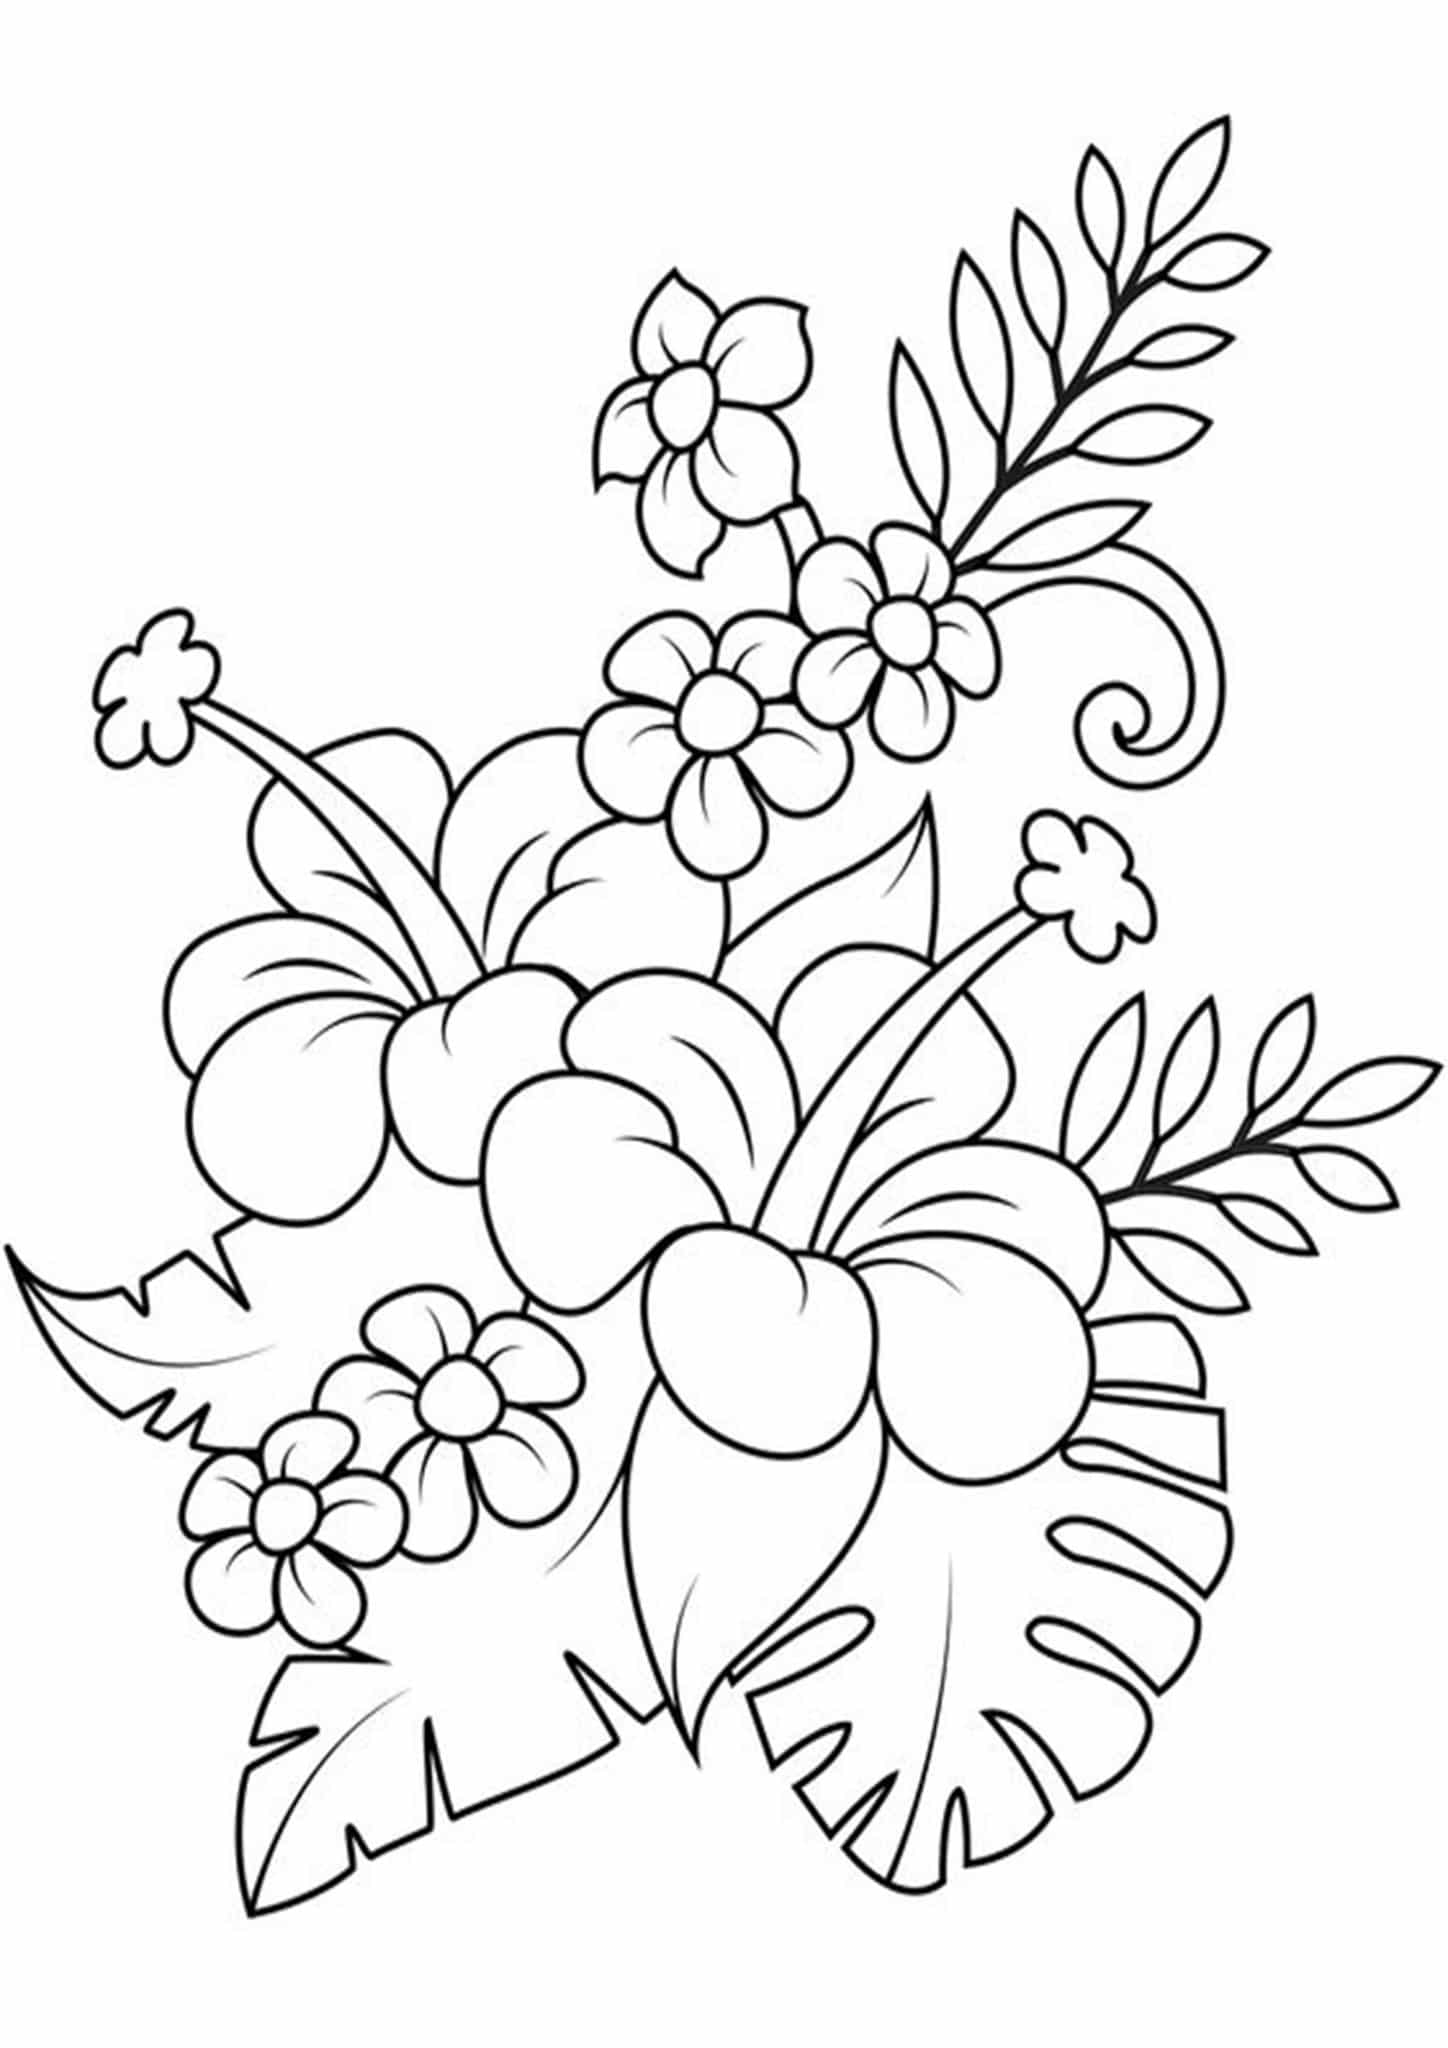 images of flowers to color free printable flower coloring pages for kids best flowers color to of images